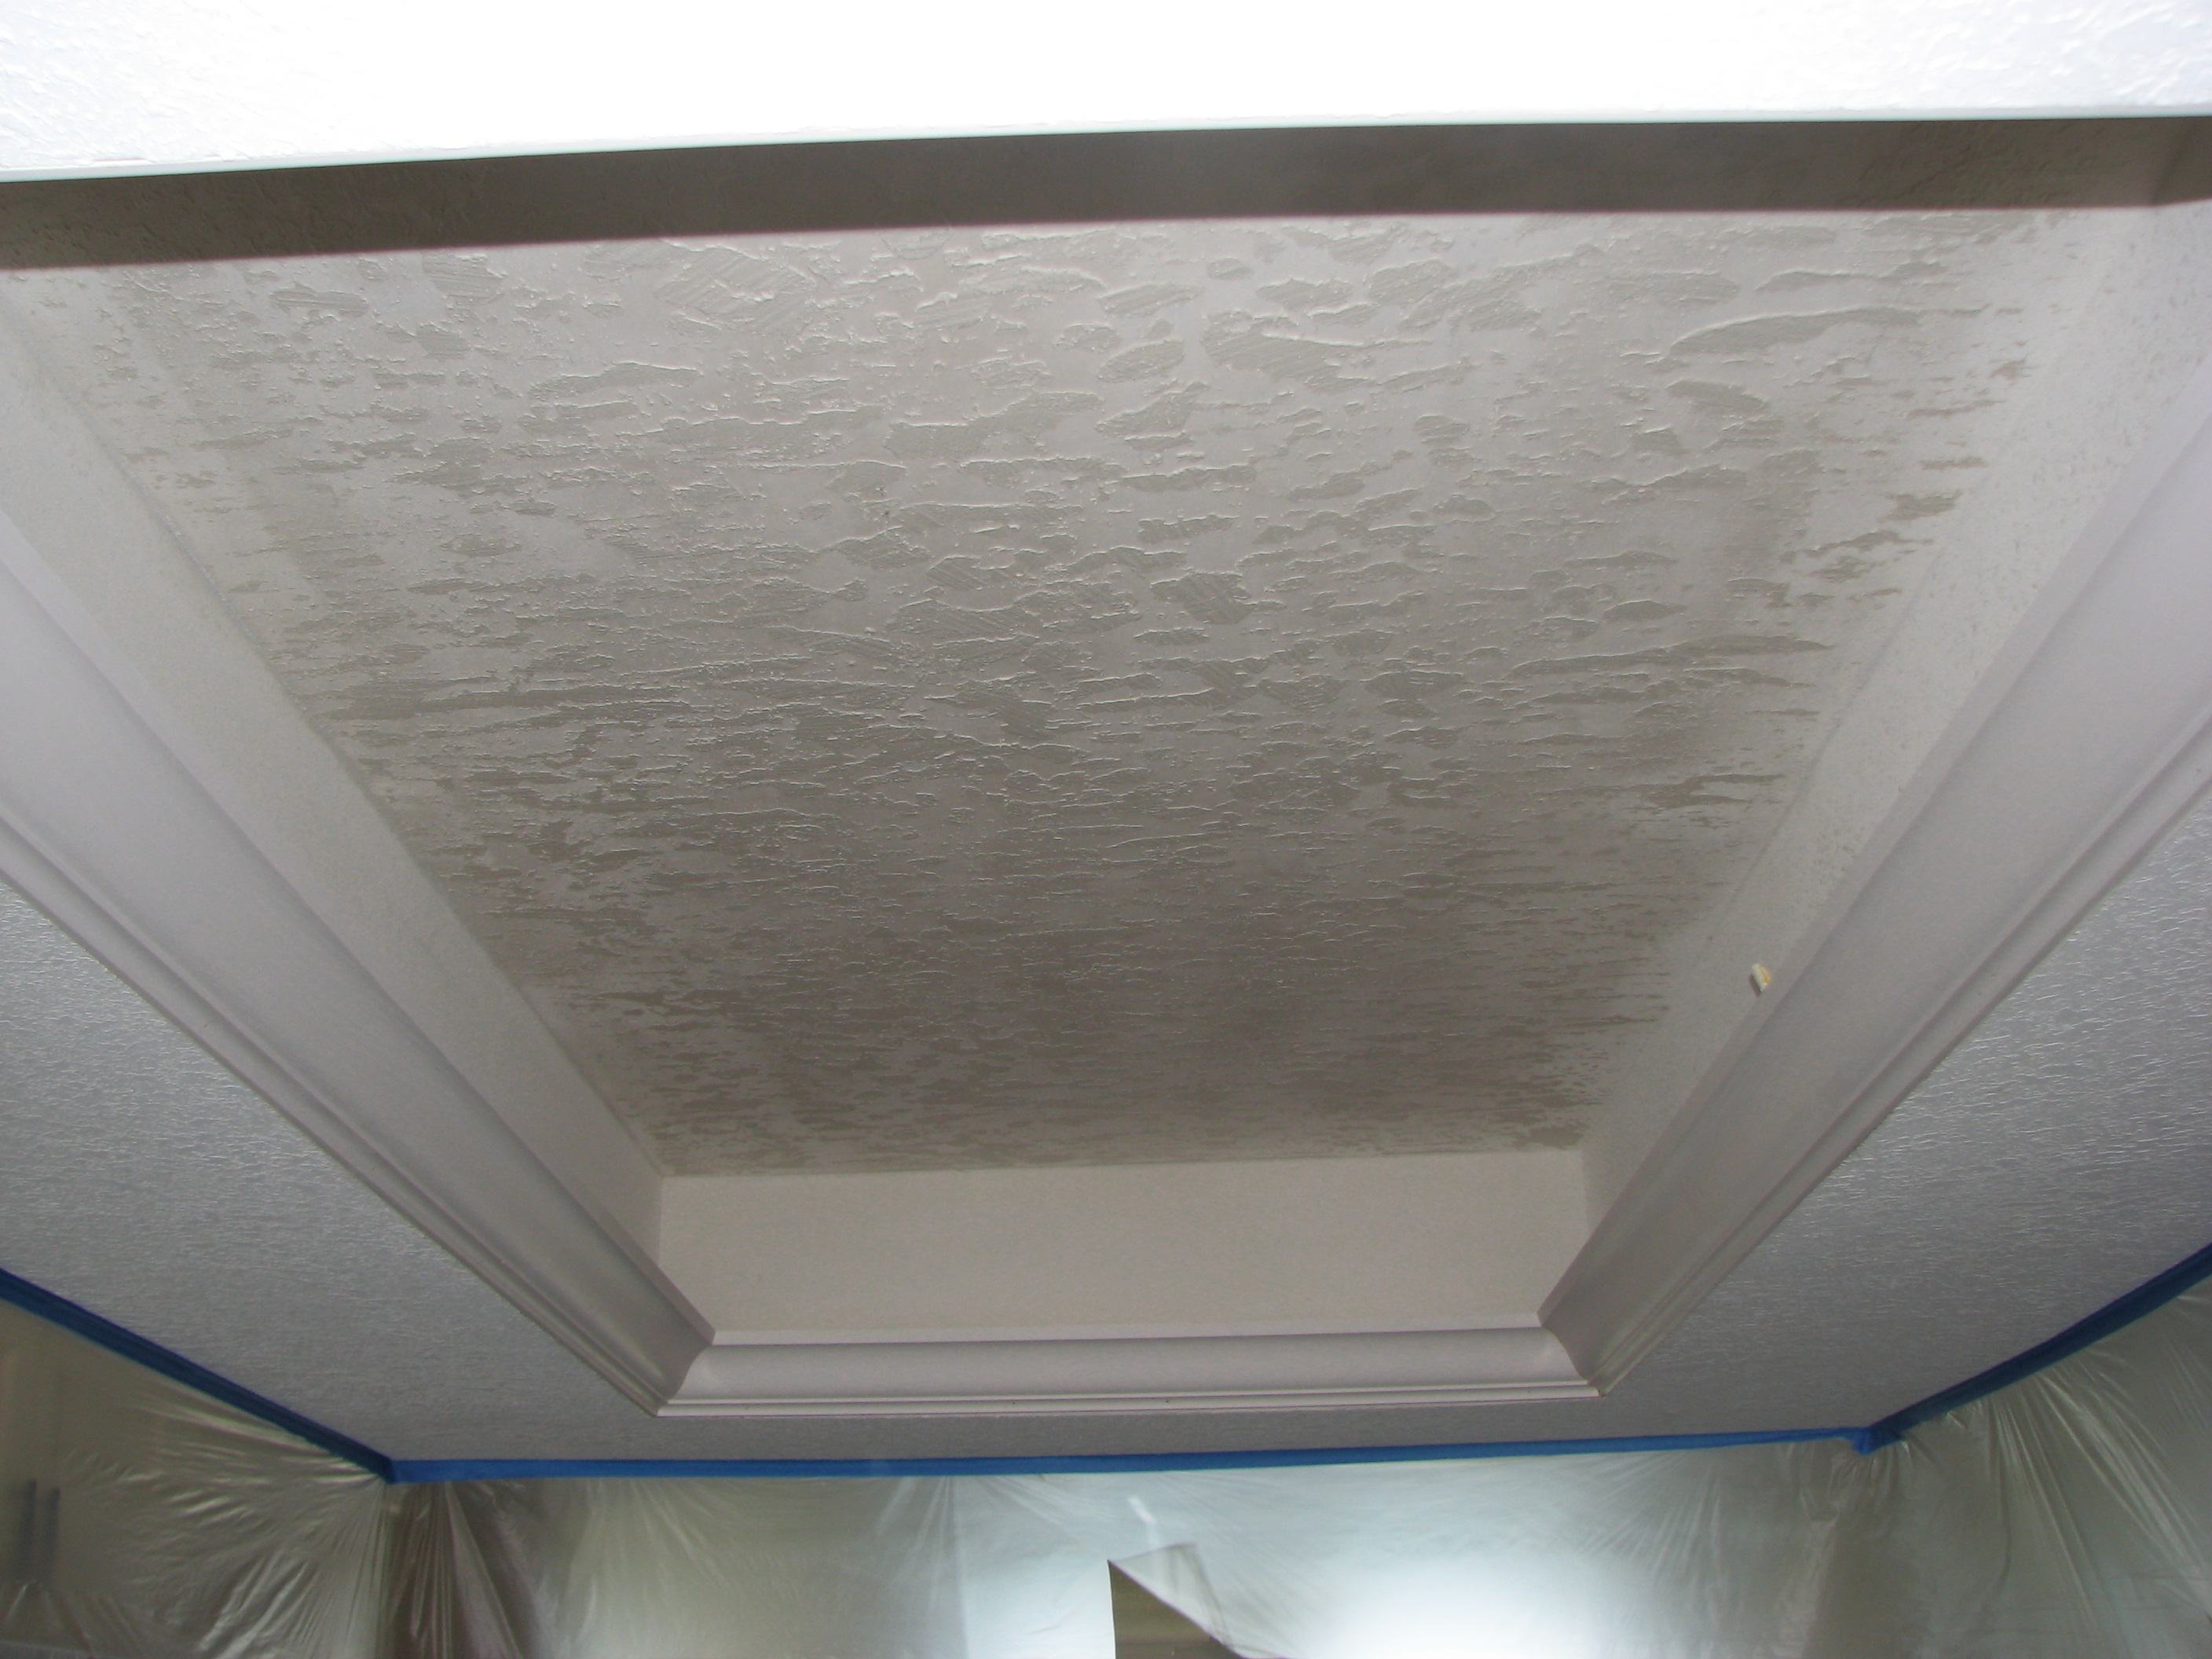 Condo Drop Ceiling Transformed Into A Lighted Trey Project Showcase Diy Chatroom Home Improvement Forum